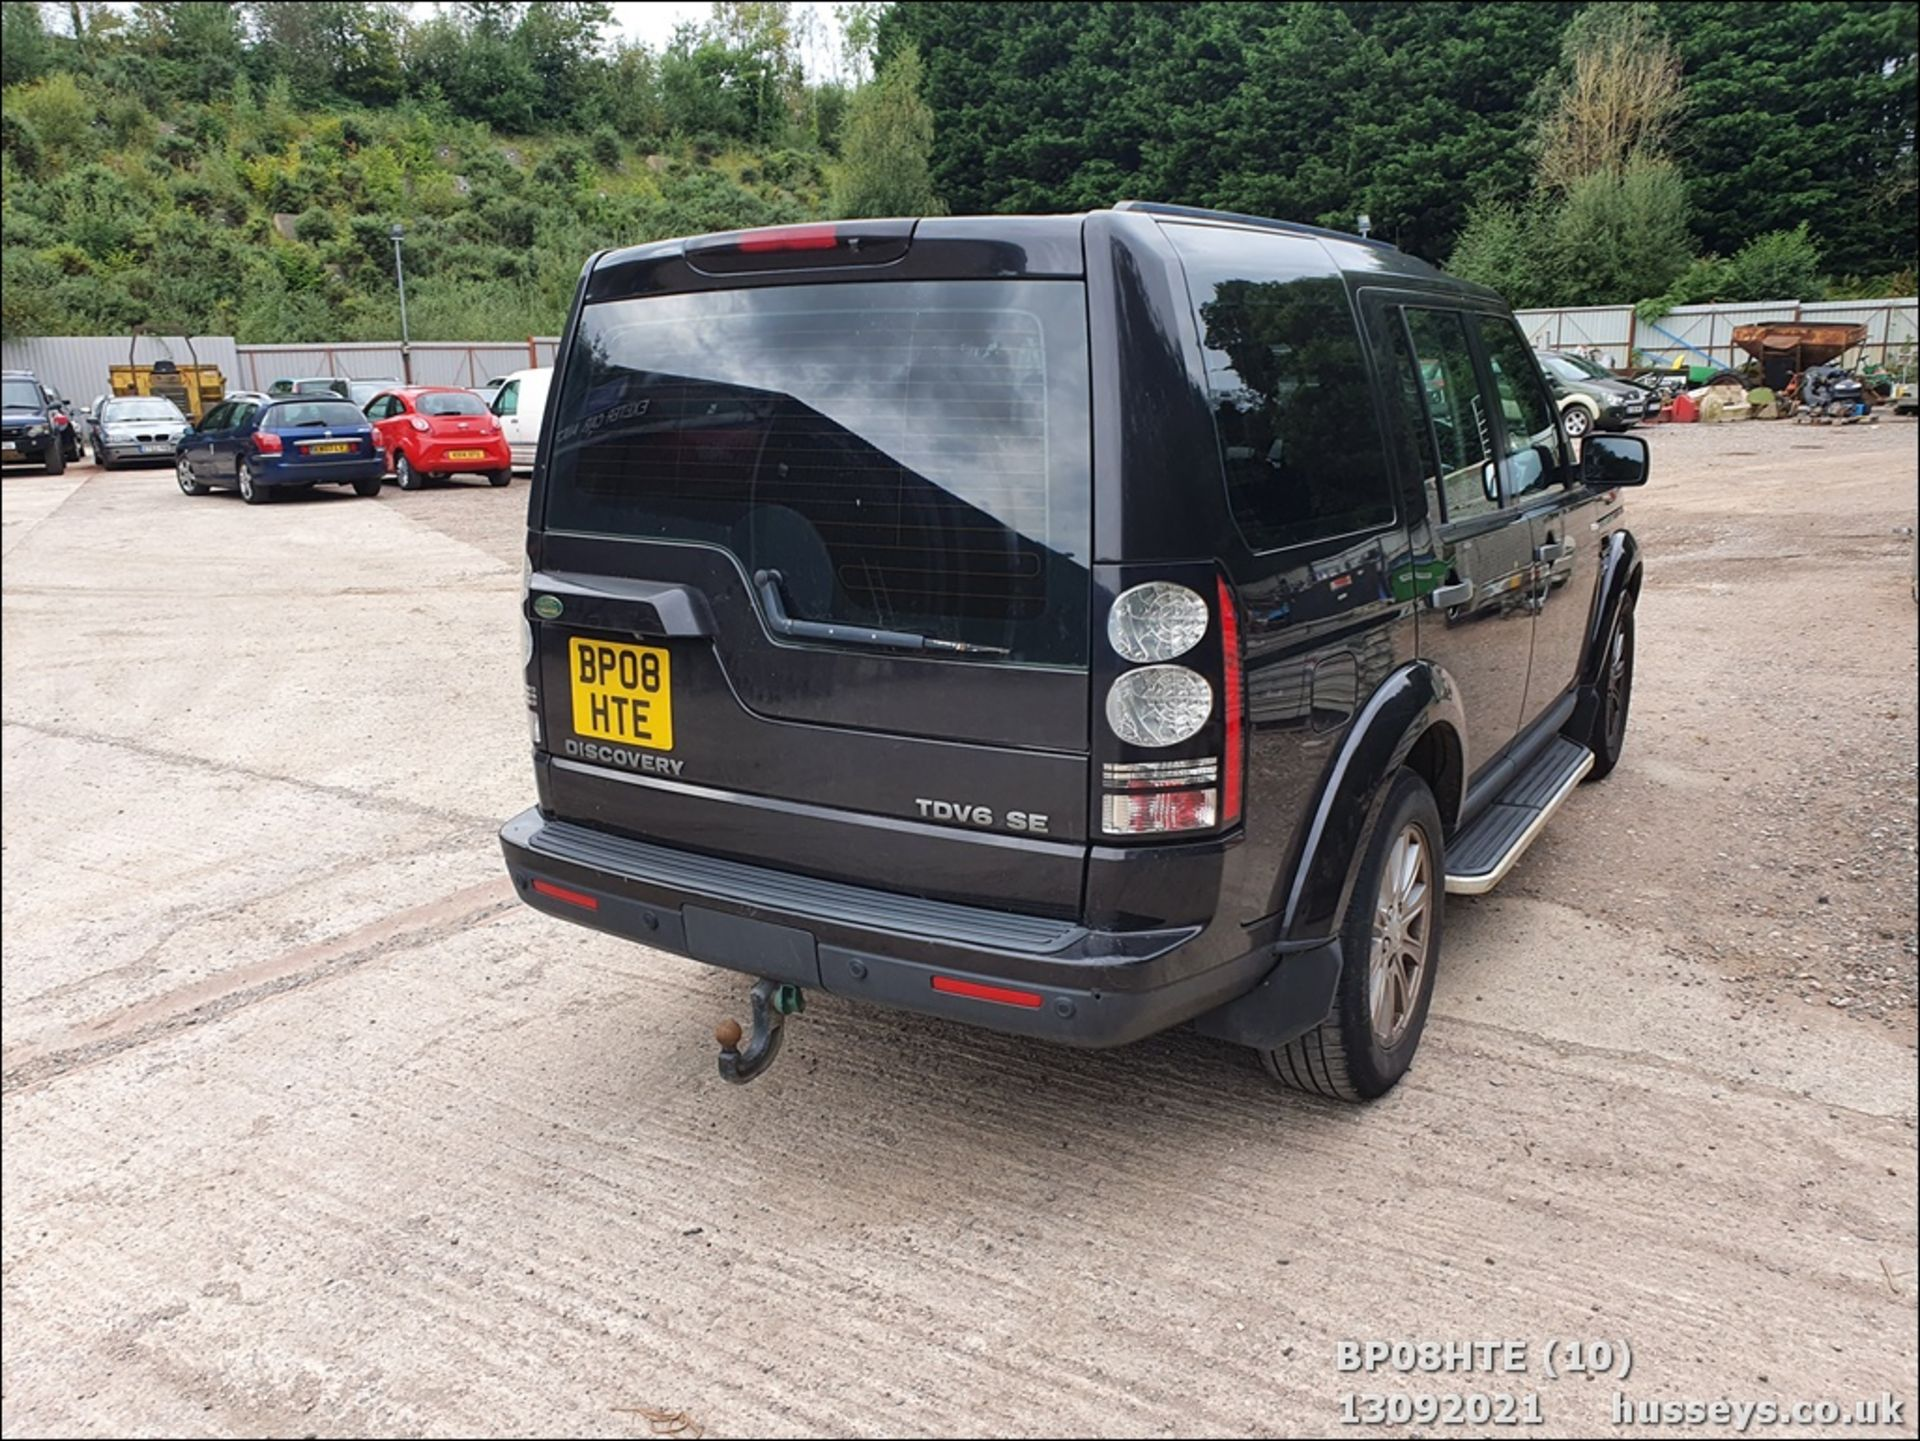 08/08 LAND ROVER DISCOVERY TDV6 SE A - 2720cc 5dr Estate (Brown, 190k) - Image 10 of 18